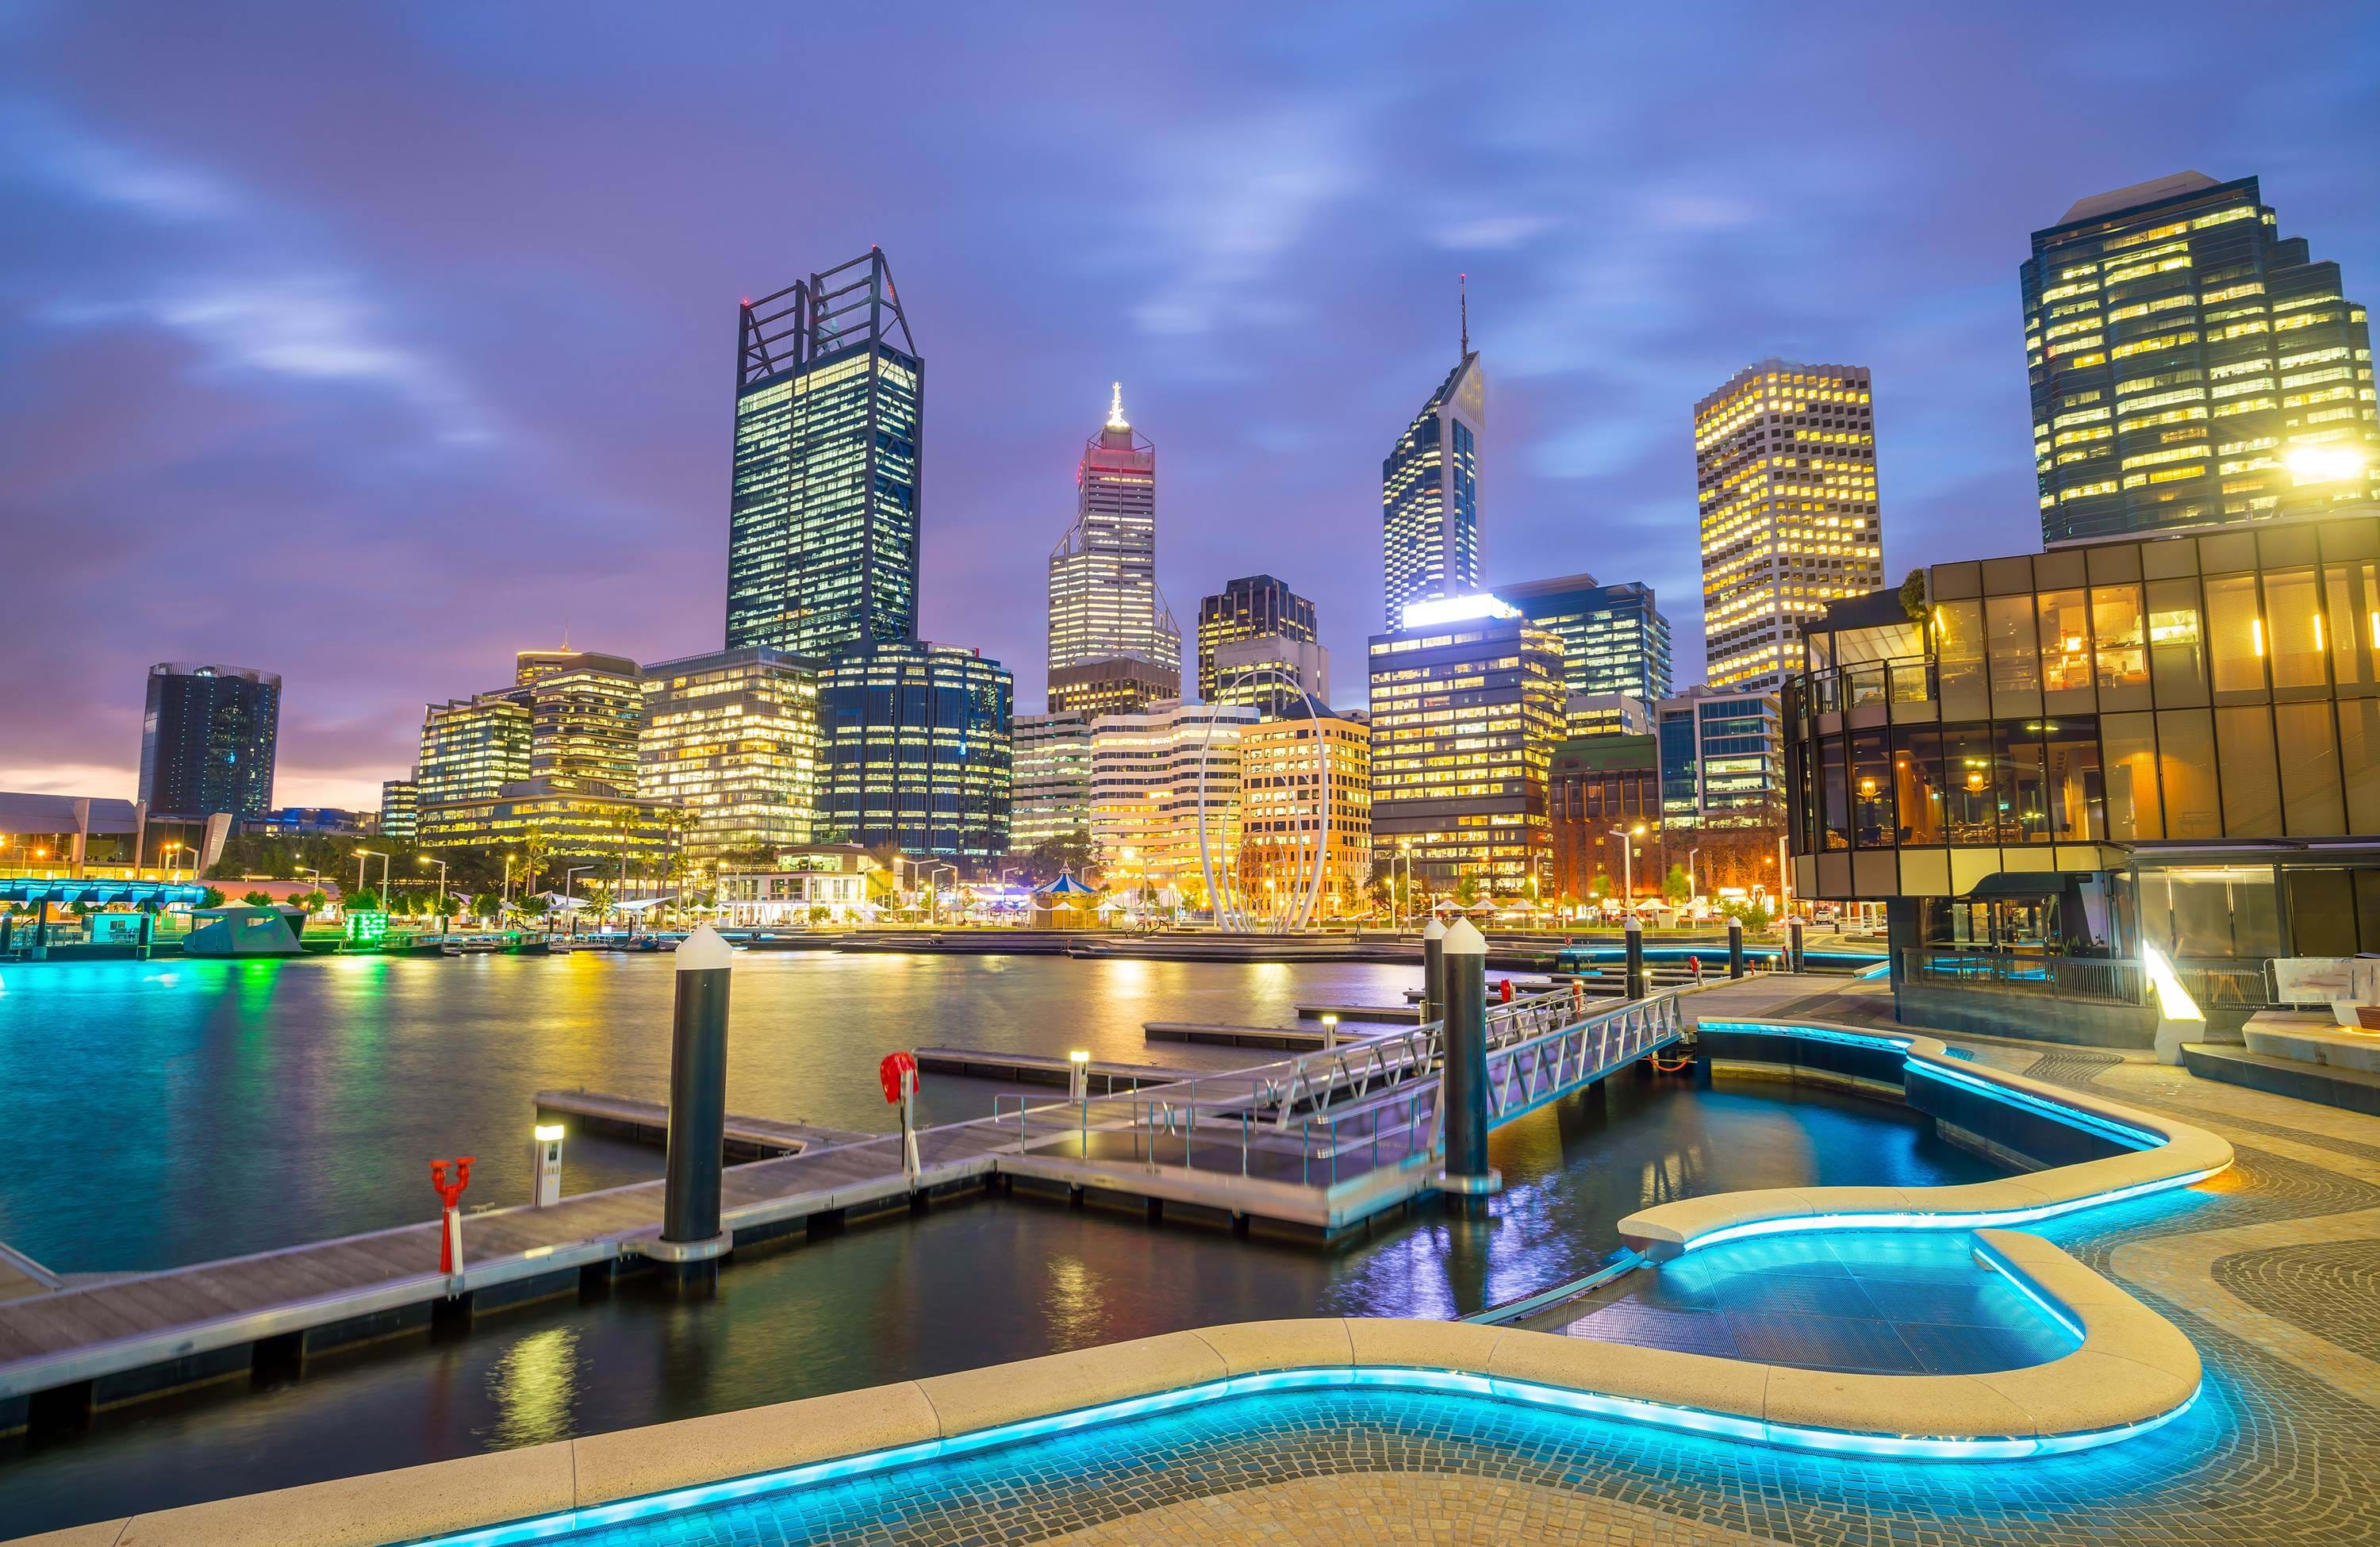 the perth skyline is amazing and you can study in perth with us